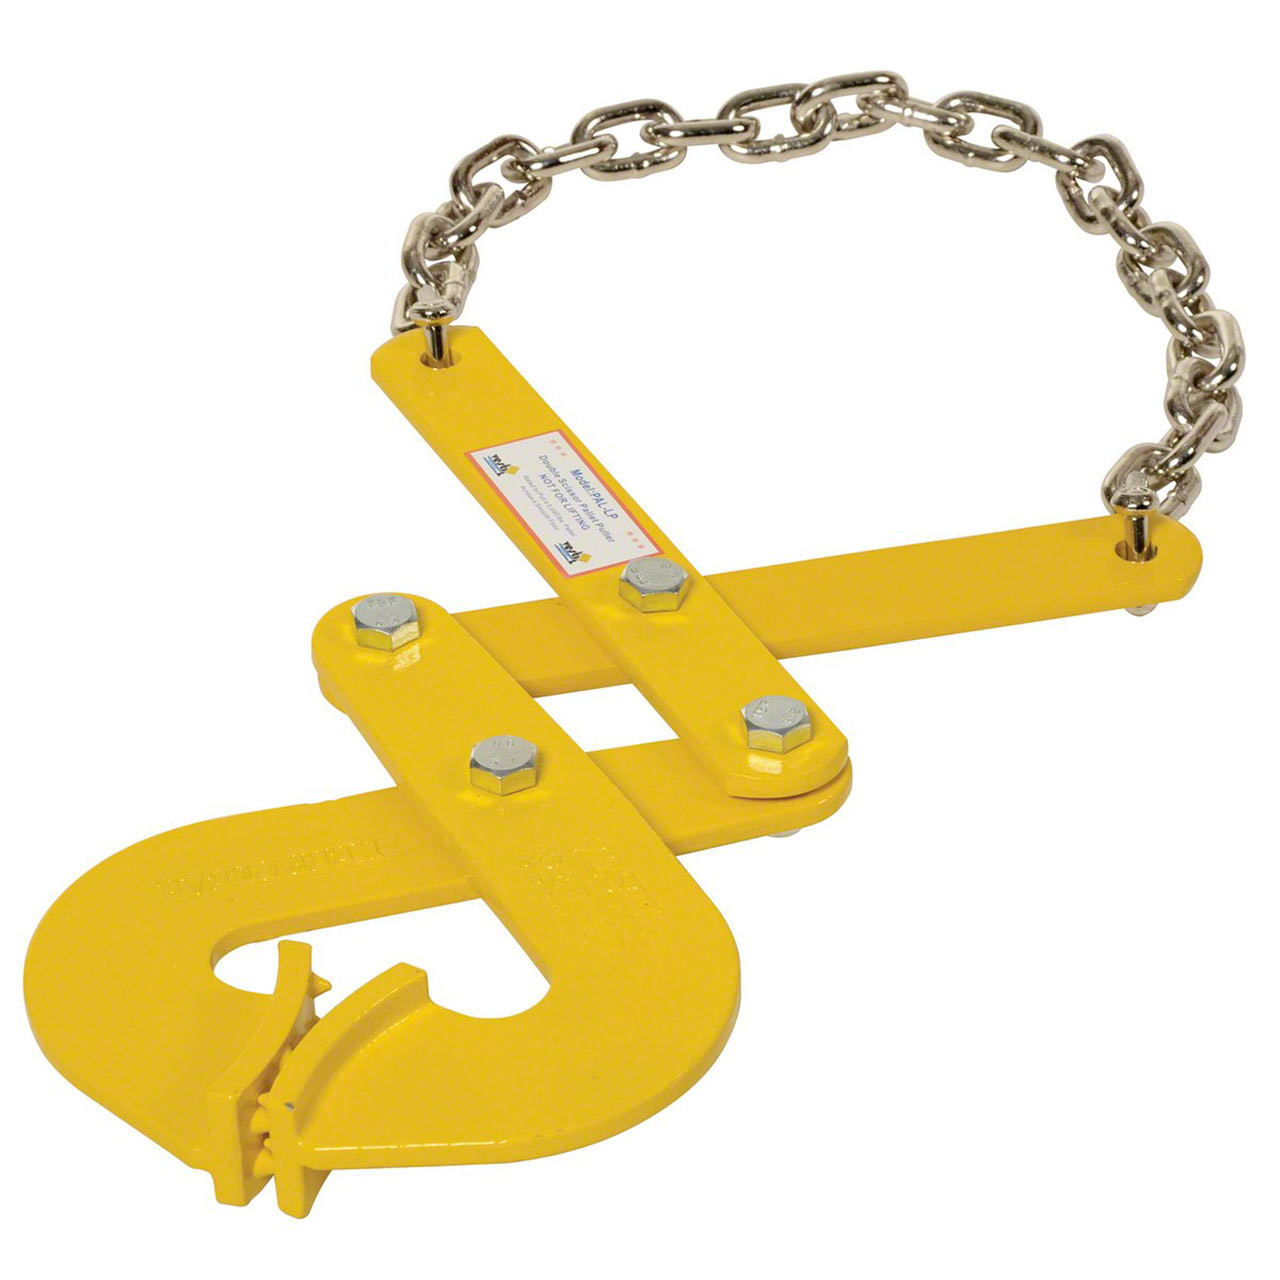 The PAL-LP pallet pullers are a low profile design for strong stringer gripping